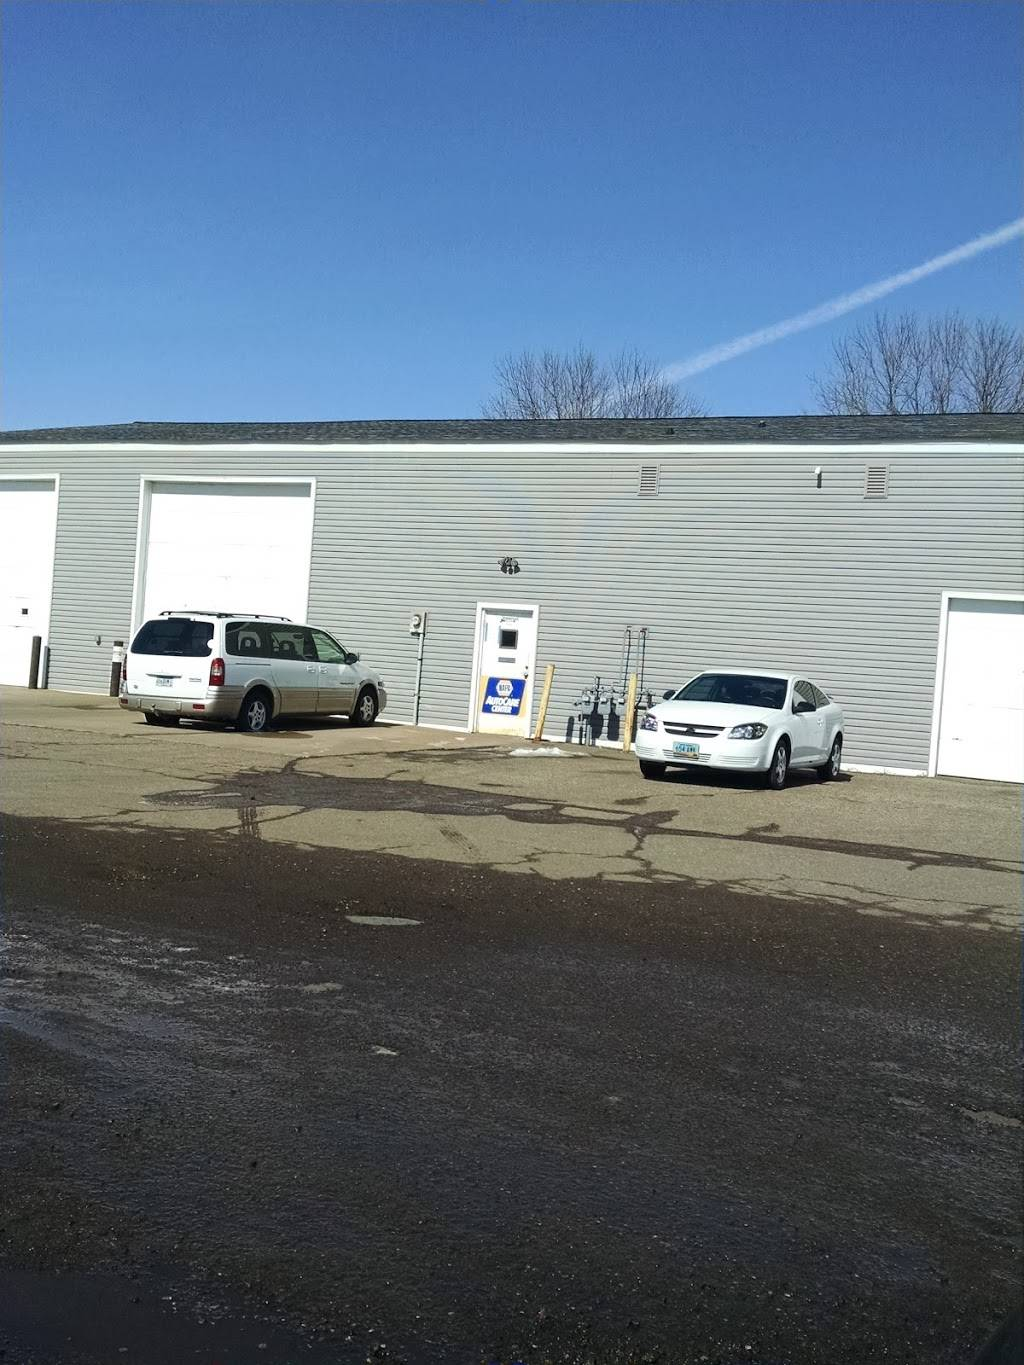 Vermeersch Automotive - car repair  | Photo 5 of 9 | Address: 7137 20th Ave N, Centerville, MN 55038, USA | Phone: (651) 226-4235